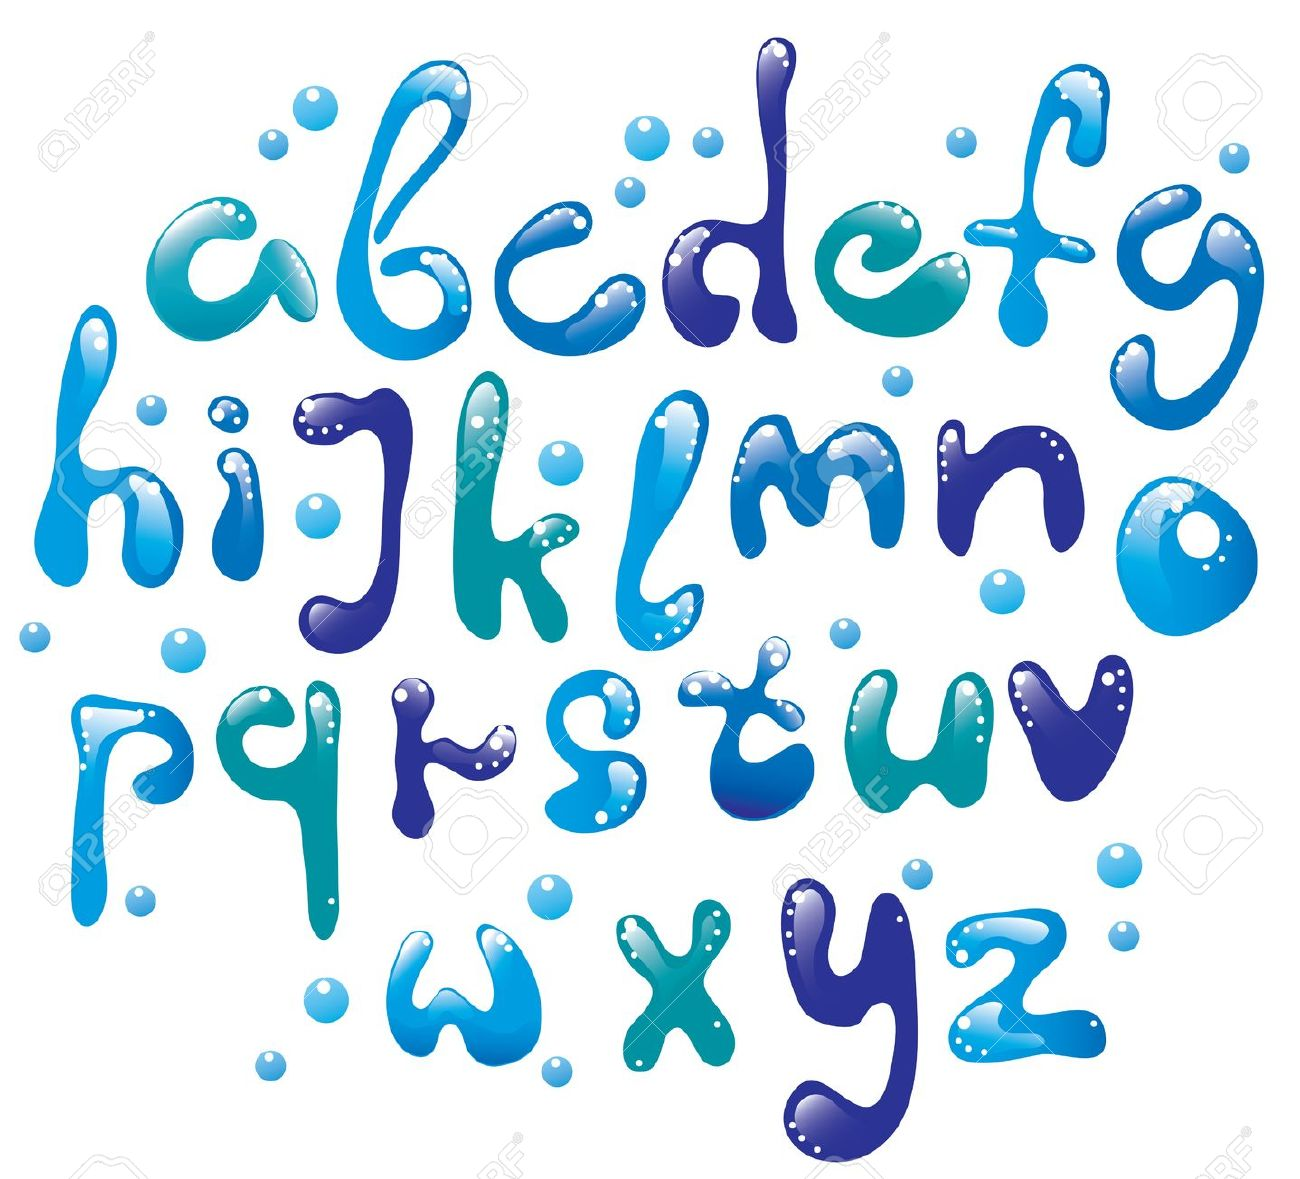 Free clipart water letters banner freeuse stock Free clipart water letters - ClipartFest banner freeuse stock